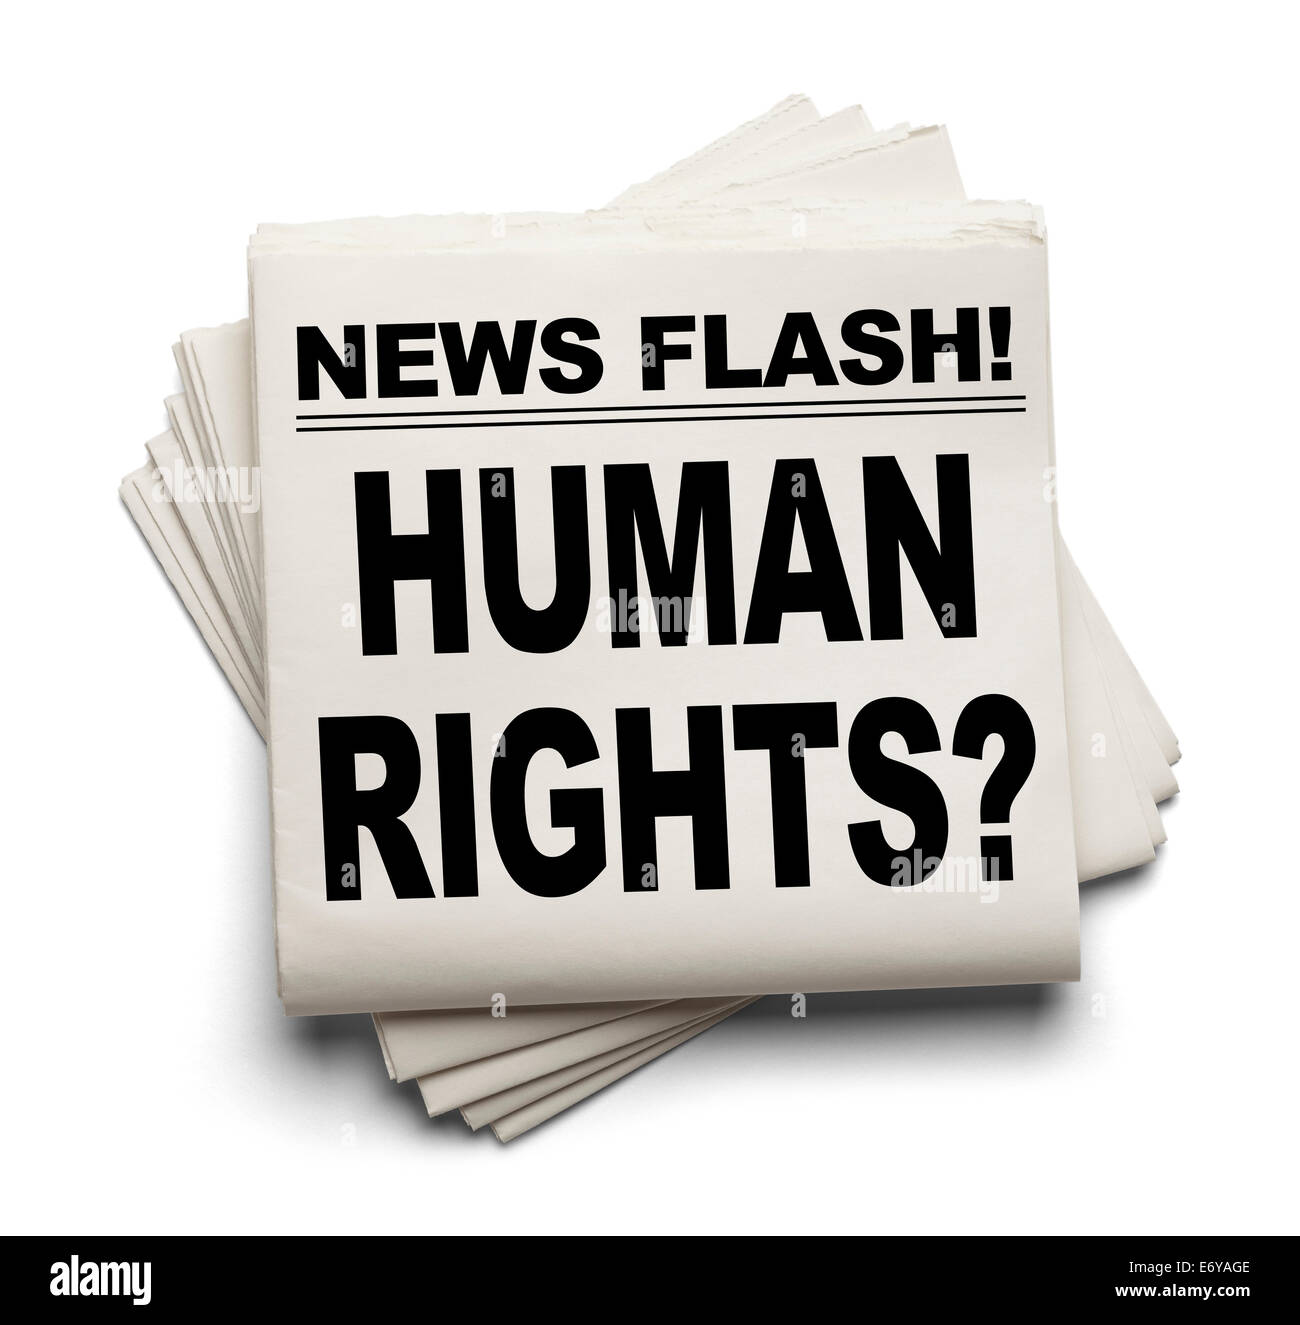 News Flash Human Rights? News Paper Isolated on White Background. - Stock Image